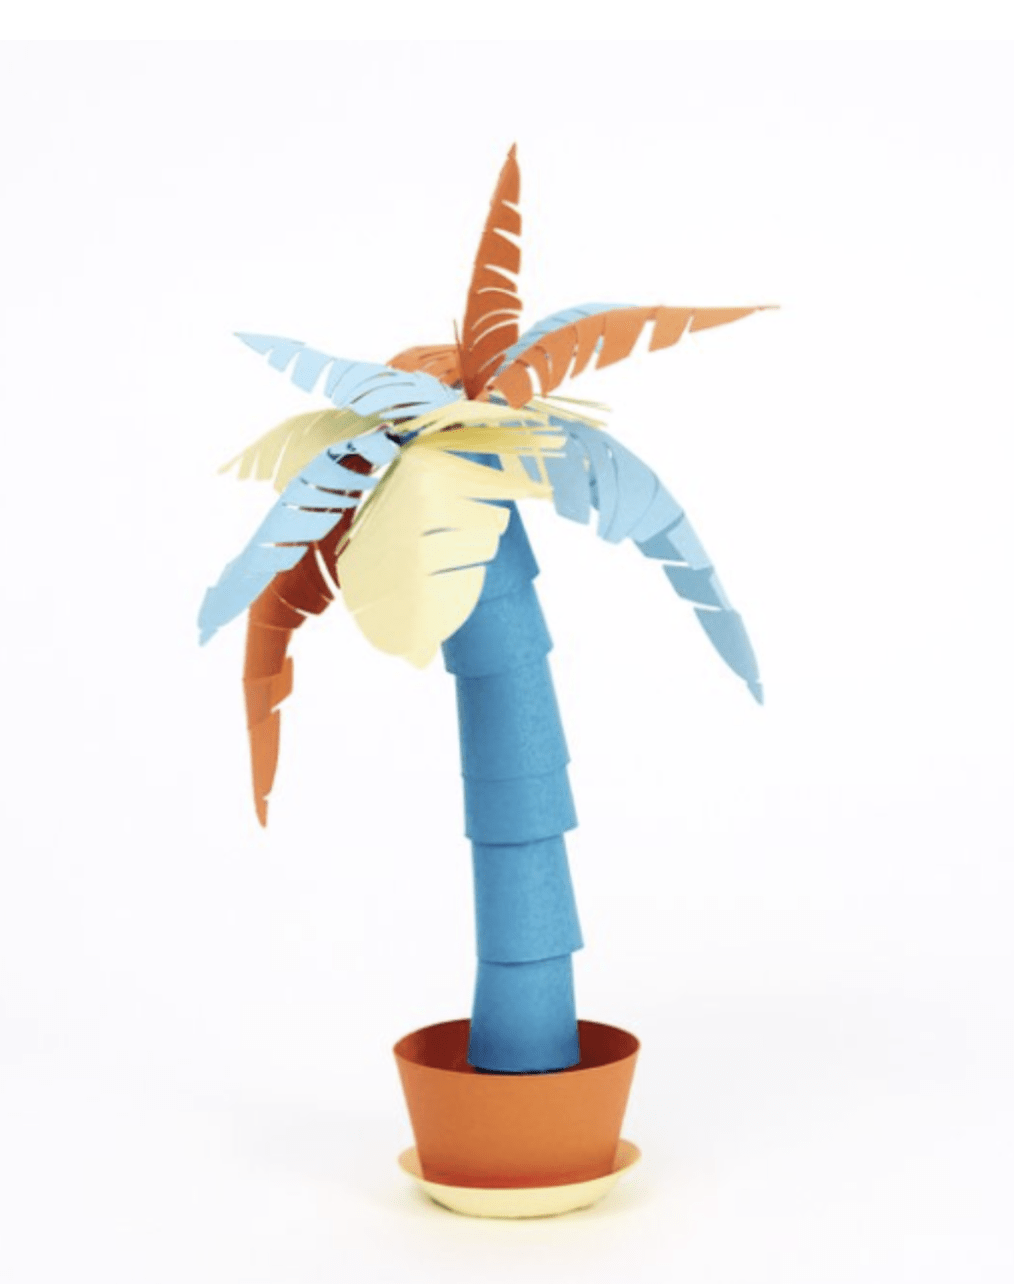 3D Palm Model Tree Kit - Make Me Yours Toy Studio